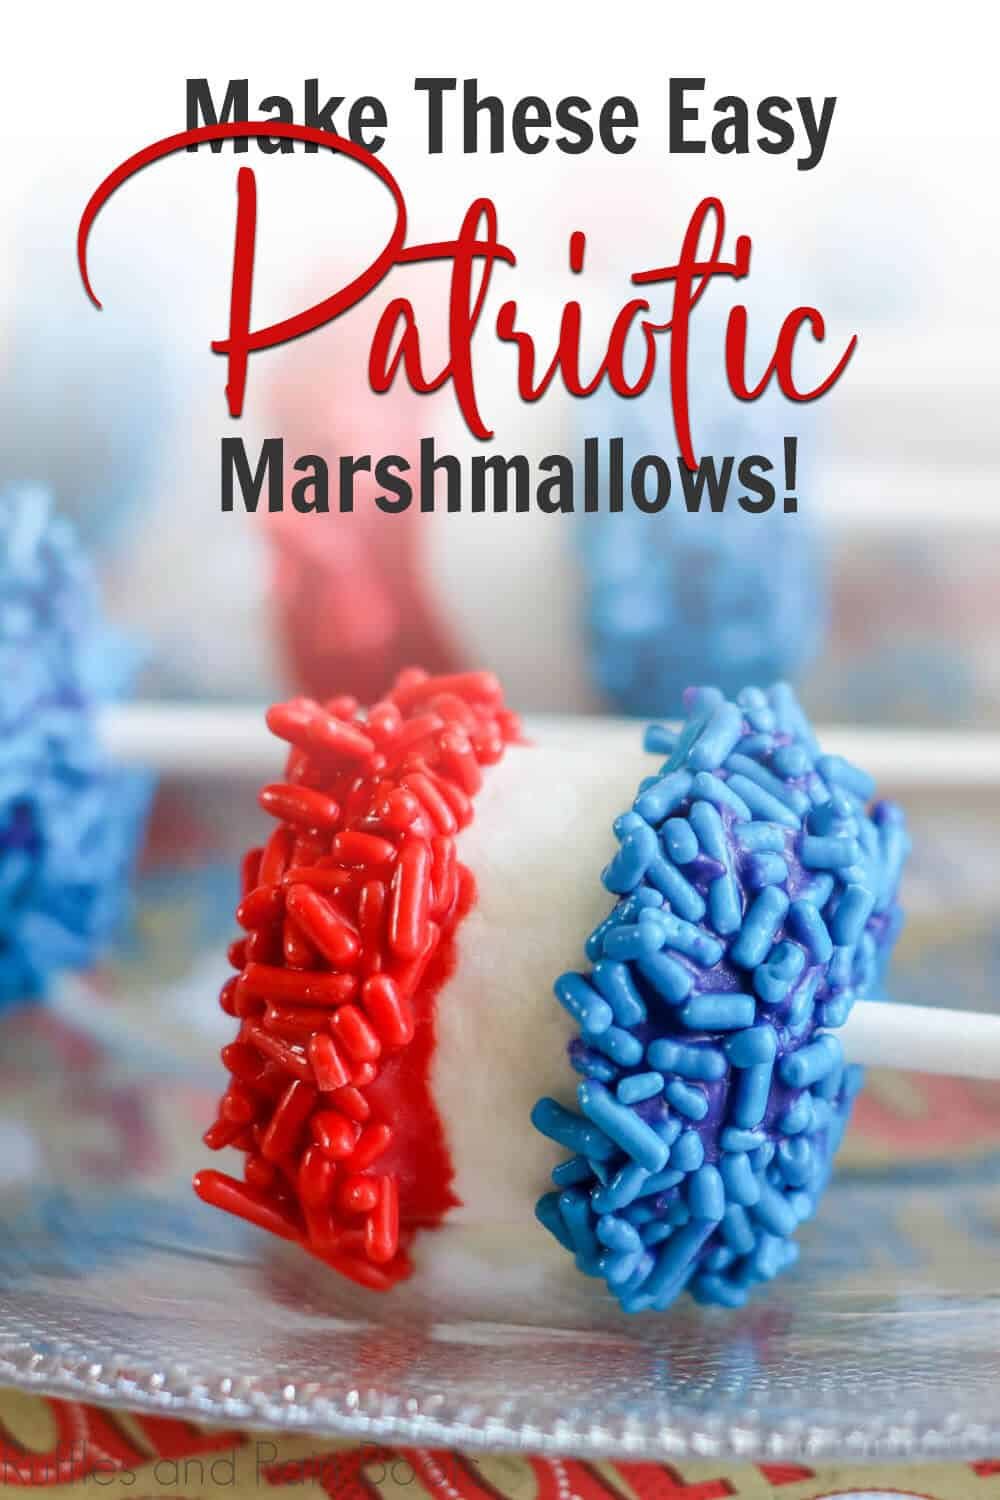 patriotic marshmallows kid-made snack for july 4th with text which reads Make These Easy Patriotic Marshmallows!